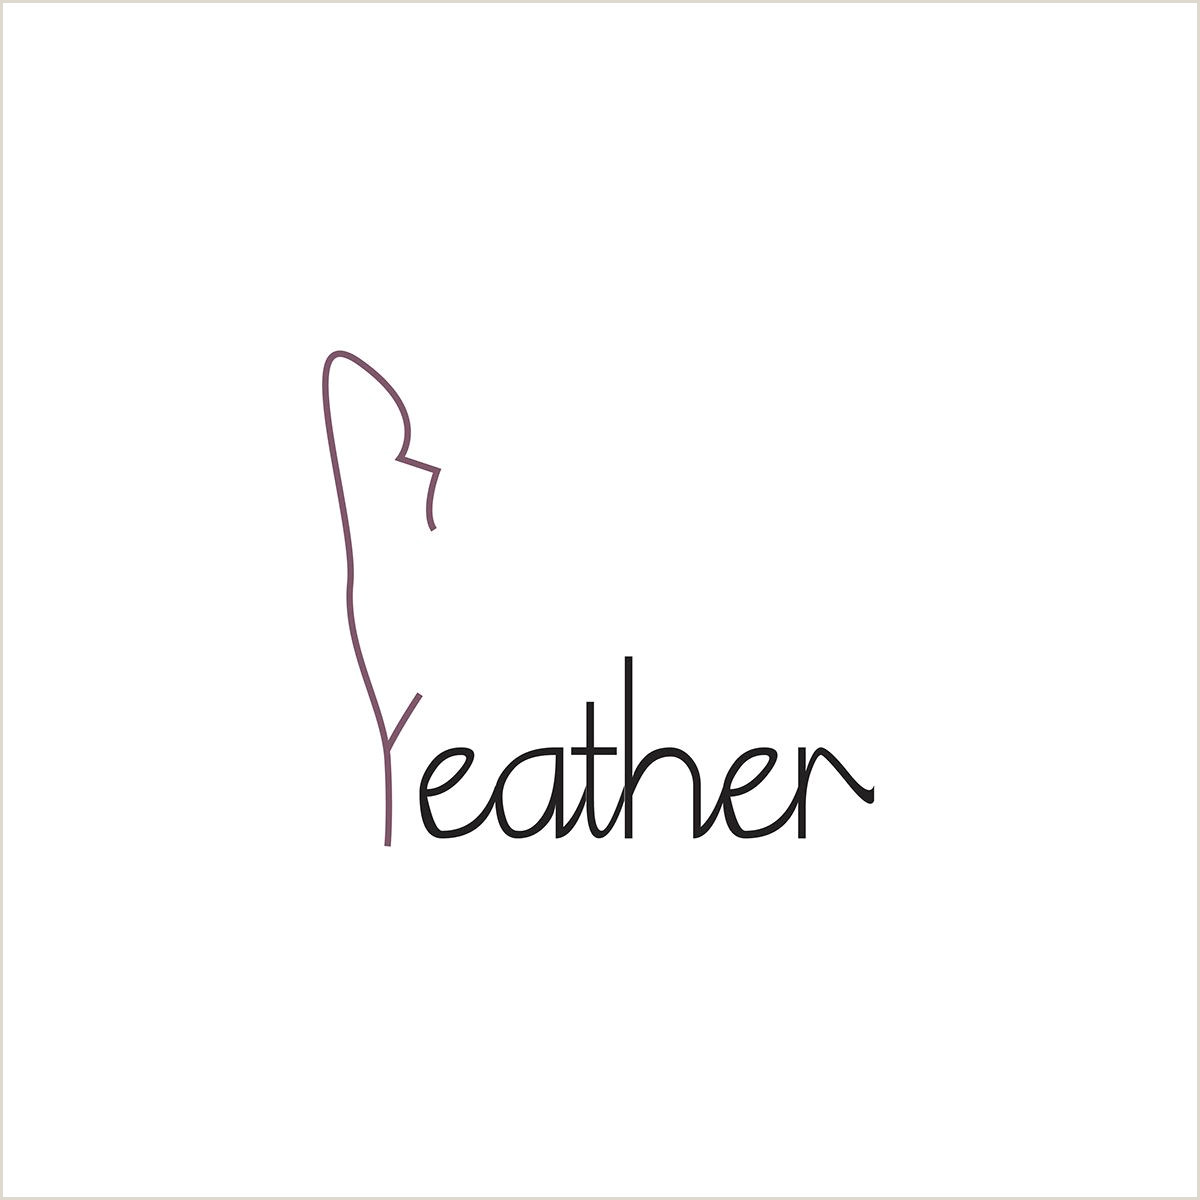 Words Related To Creativity And Design Feather Verbicon By Ravi Koranga